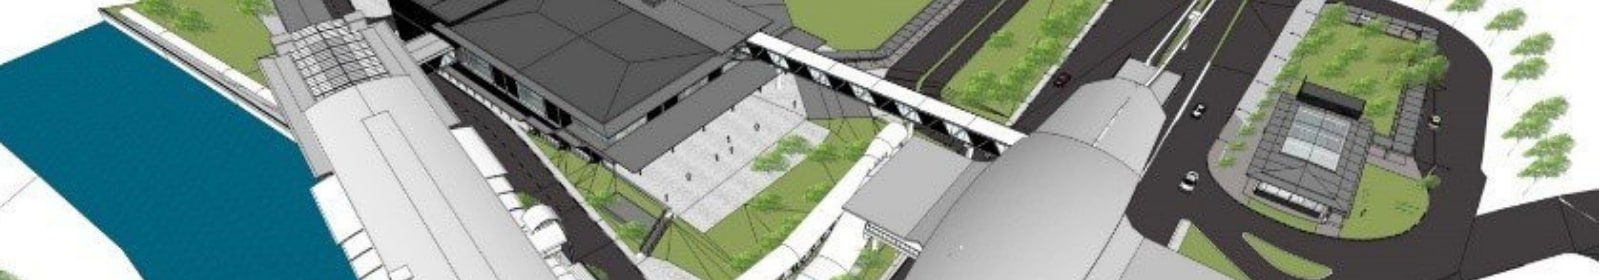 Plans for new transit system are depicted in graphics